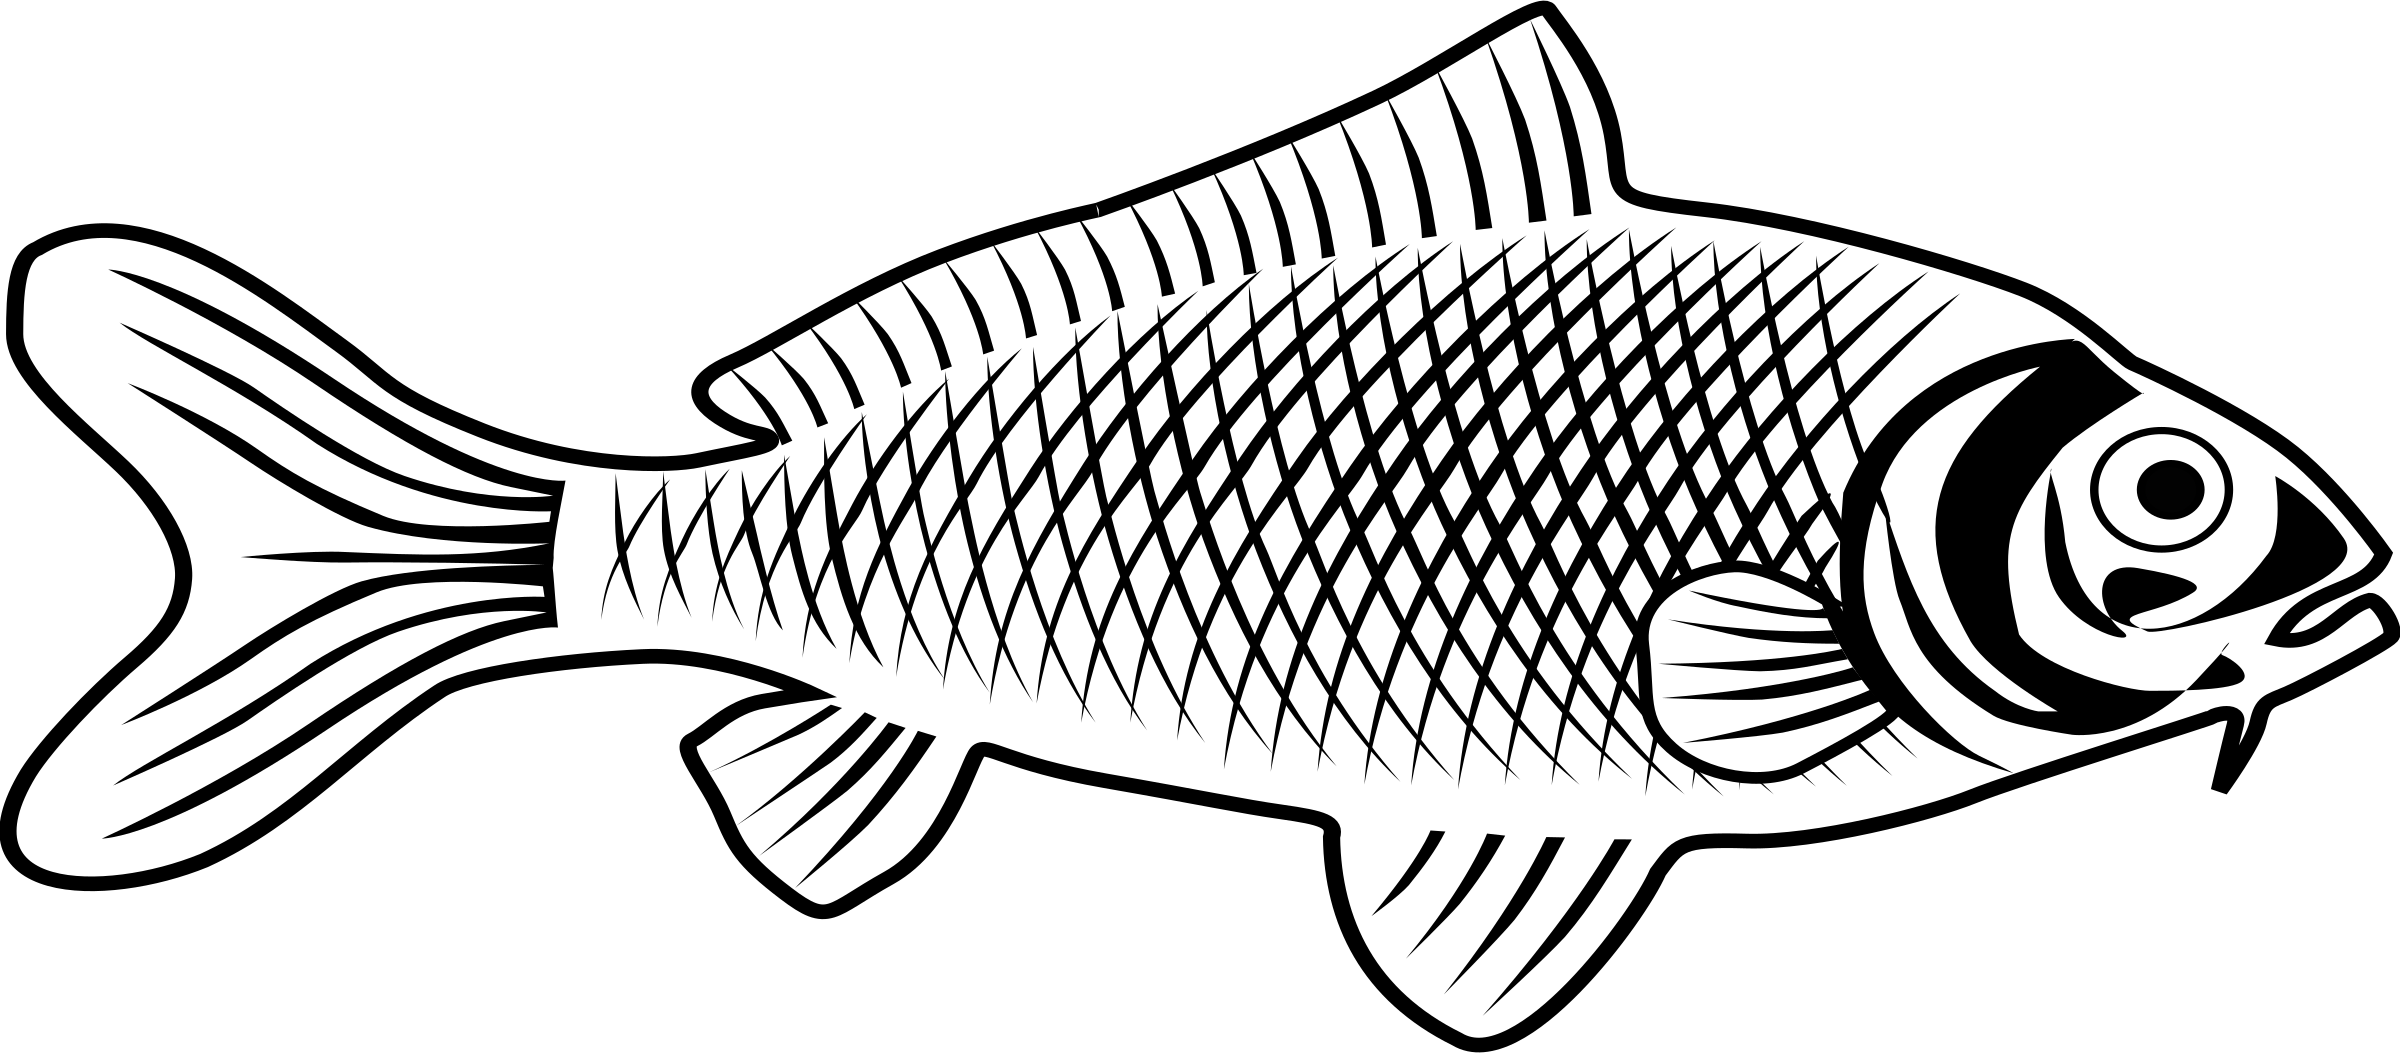 Bony fish clipart jpg freeuse download Clipart - fish jpg freeuse download